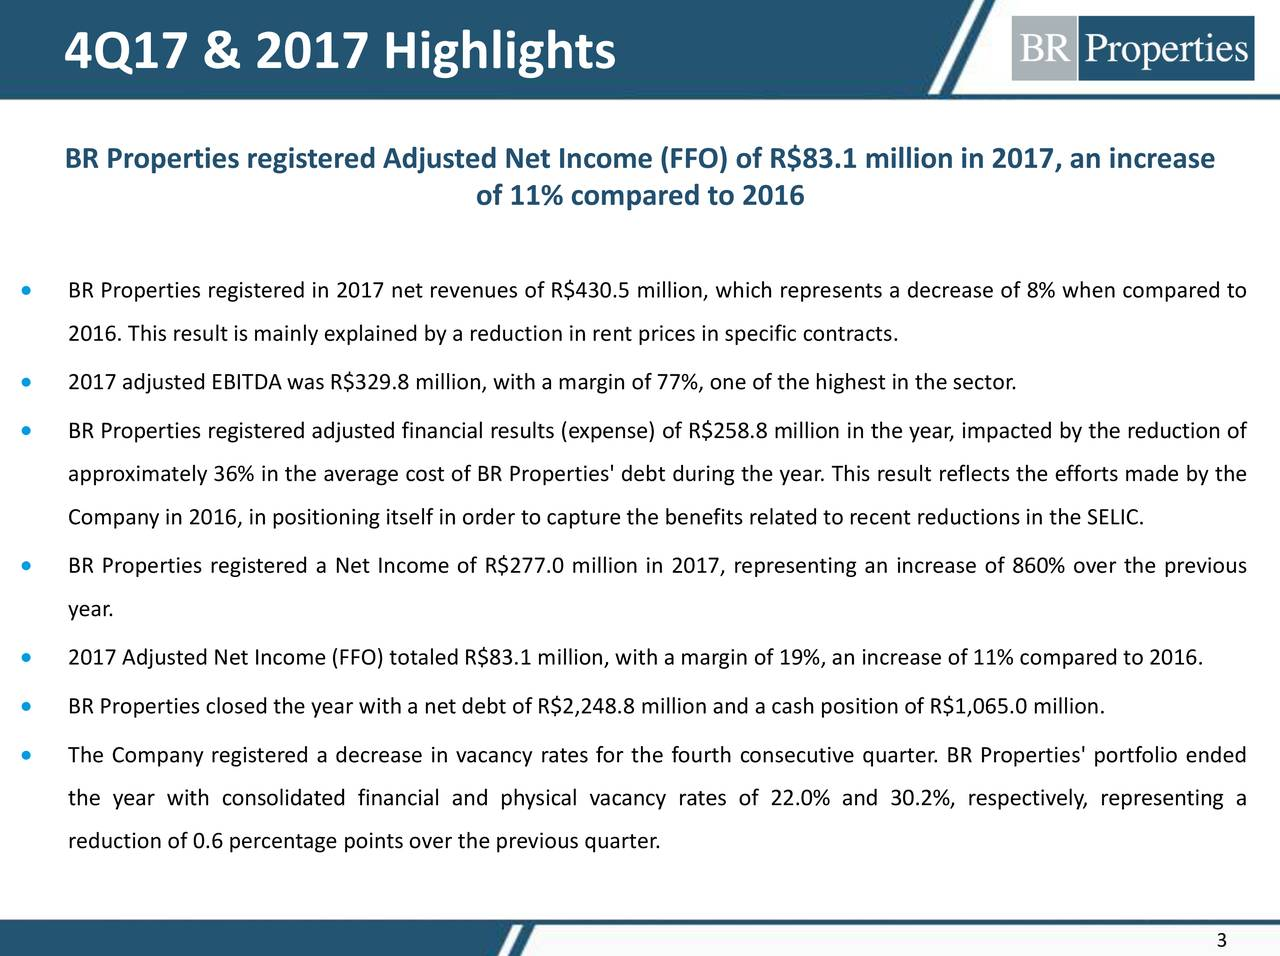 BR Properties registered Adjusted Net Income (FFO) of R$83.1 million in 2017, an increase of 11% compared to 2016 • BR Properties registered in 2017 net revenues of R$430.5 million, which represents a decrease of 8% when compared to 2016. This result is mainly explained by a reduction in rent prices in specific contracts. • 2017 adjusted EBITDA was R$329.8 million, with a margin of 77%, one of the highest in the sector. • BR Properties registered adjusted financial results (expense) of R$258.8 million in the year, impacted by the reduction of approximately 36% in the average cost of BR Properties' debt during the year. This result reflects the efforts made by the Company in 2016, in positioning itself in order to capture the benefits related to recent reductions in the SELIC. • BR Properties registered a Net Income of R$277.0 million in 2017, representing an increase of 860% over the previous year. • 2017 Adjusted Net Income (FFO) totaled R$83.1 million, with a margin of 19%, an increase of 11% compared to 2016. • BR Properties closed the year with a net debt of R$2,248.8 million and a cash position of R$1,065.0 million. • The Company registered a decrease in vacancy rates for the fourth consecutive quarter. BR Properties' portfolio ended the year with consolidated financial and physical vacancy rates of 22.0% and 30.2%, respectively, representing a reduction of 0.6 percentage points over the previous quarter.